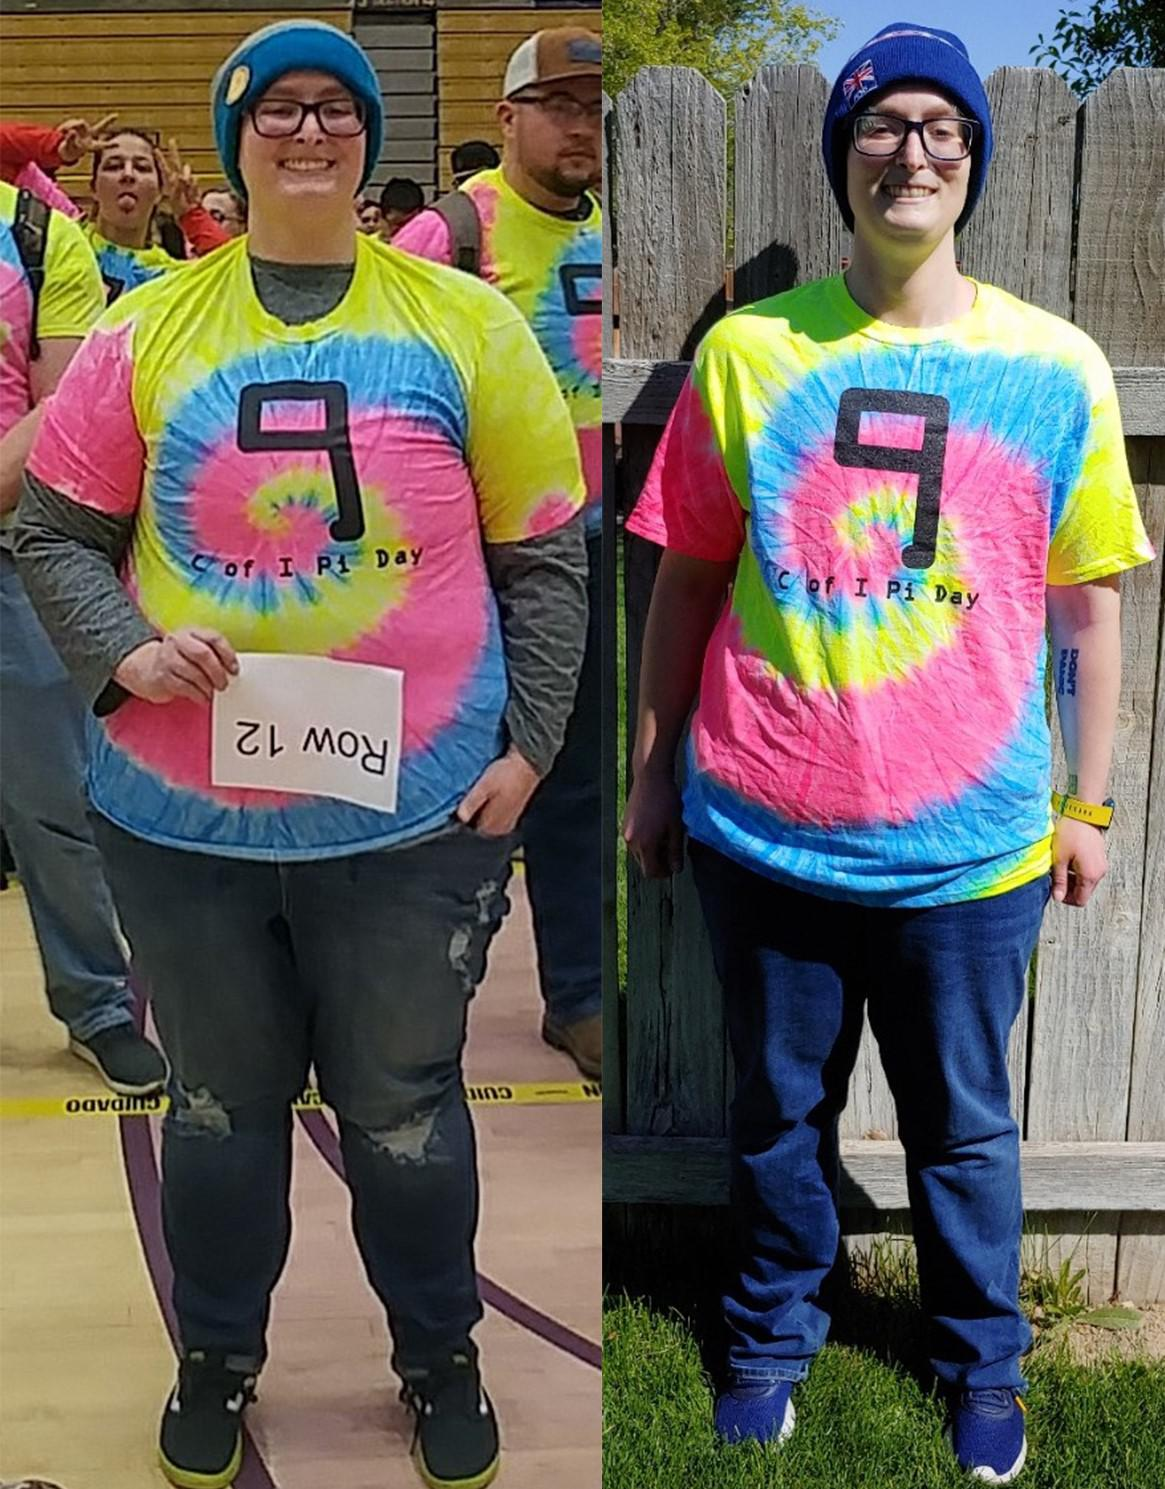 100 lbs Weight Loss Before and After 5'10 Female 303 lbs to 203 lbs